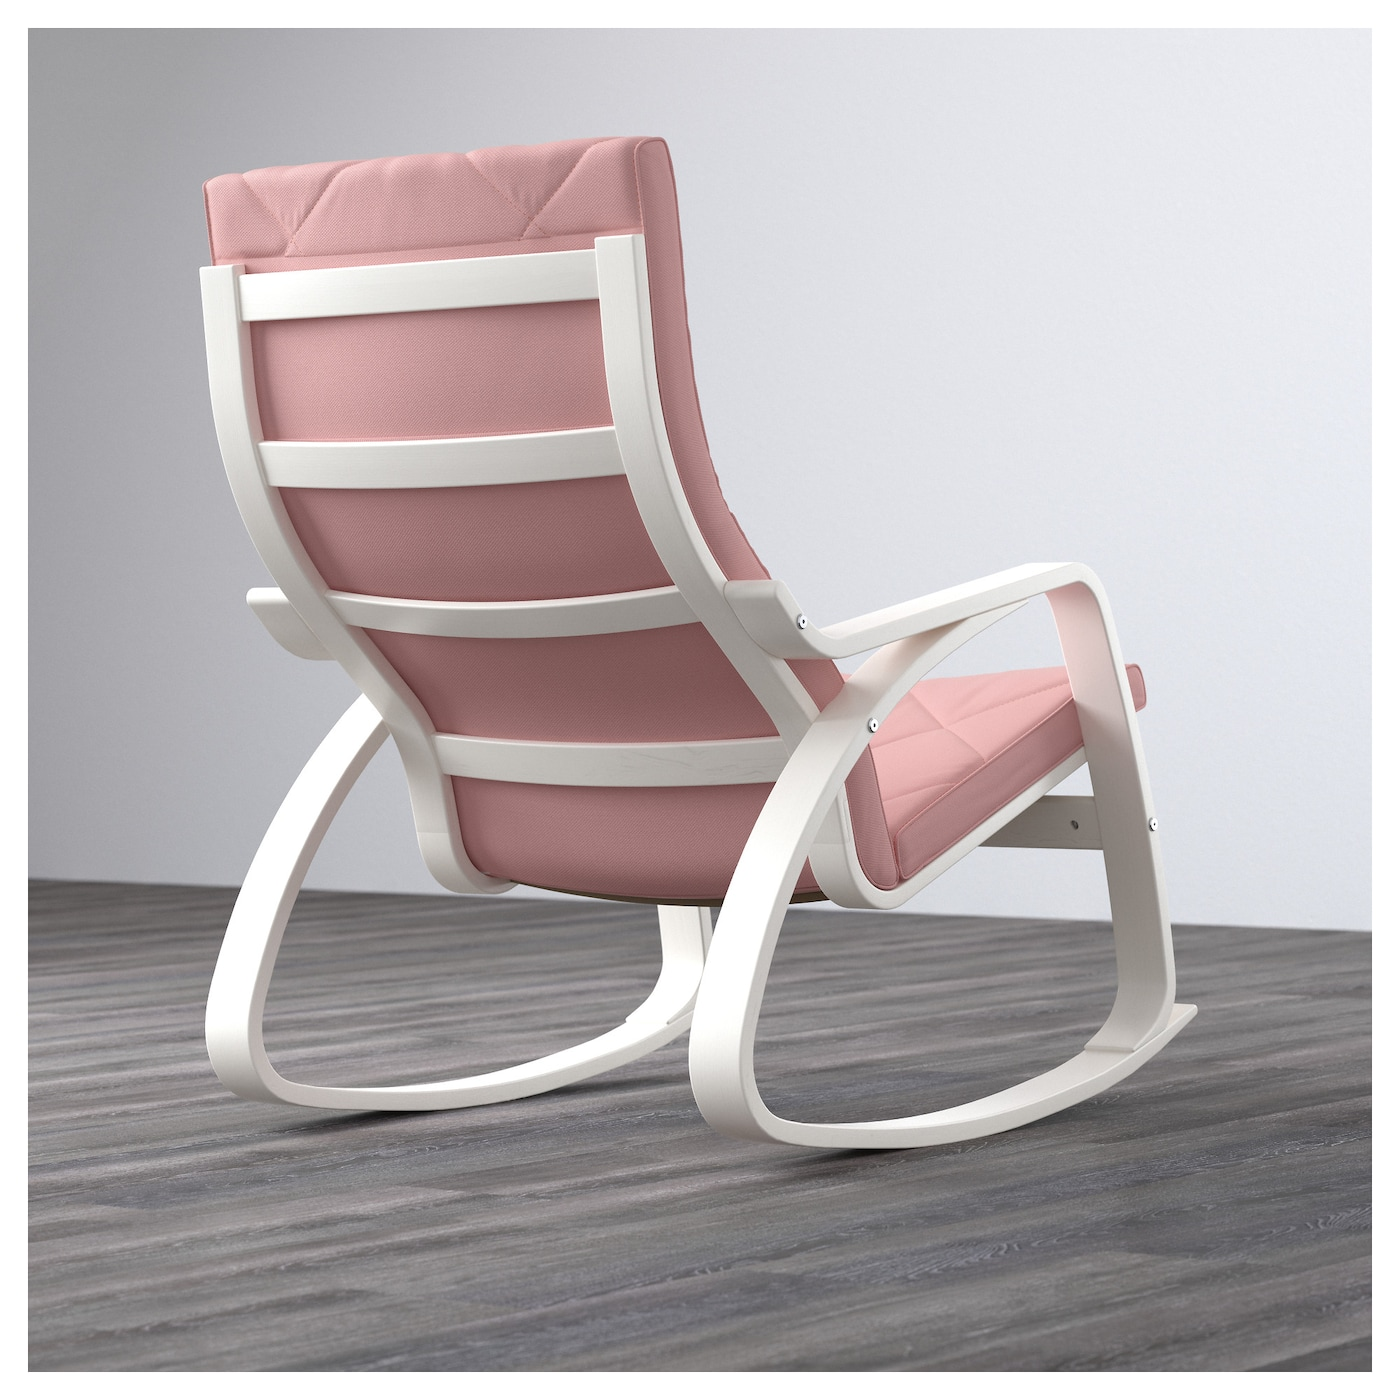 Rocking-chair POÄNG White/gräsbo pink